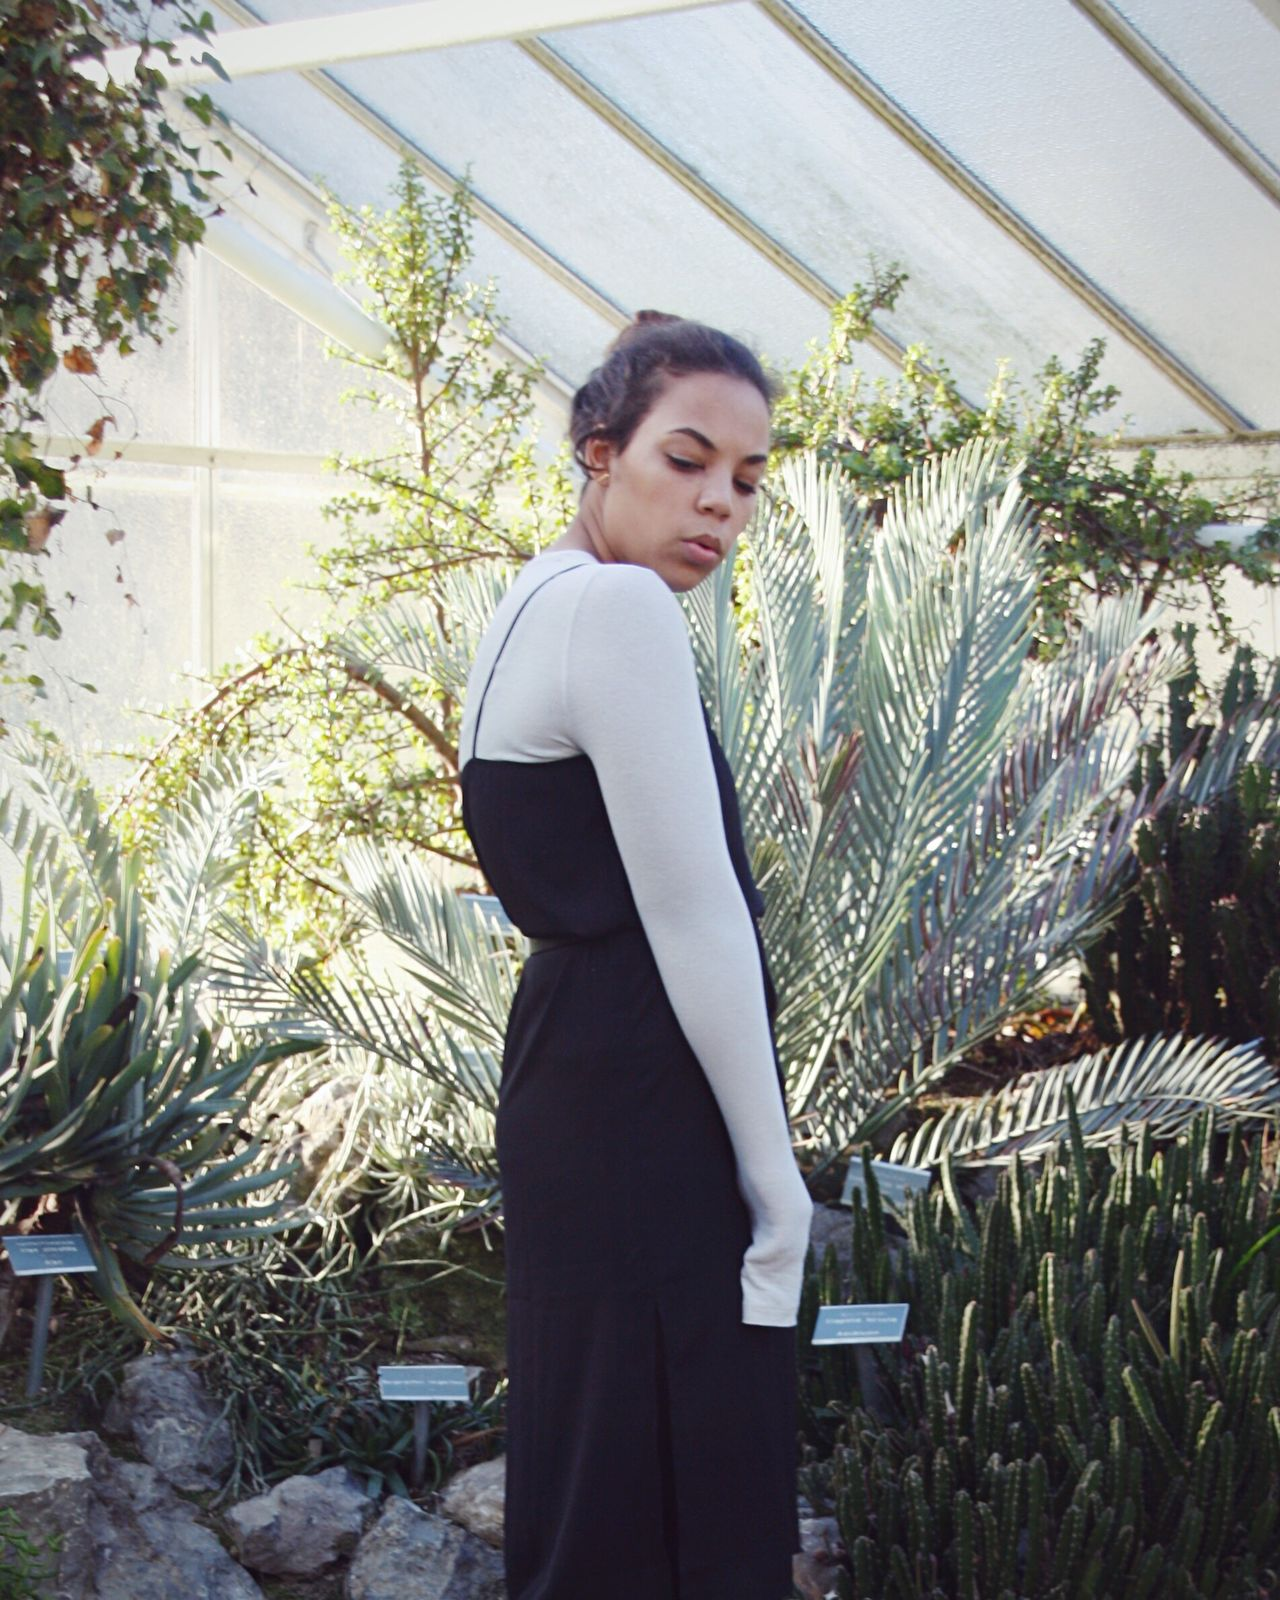 Greenhouse Editorial One Woman Only Standing Plant Entrepreneur Greenhouse Day Editorial  Fashion Trend Fashioneditorial Dress Black